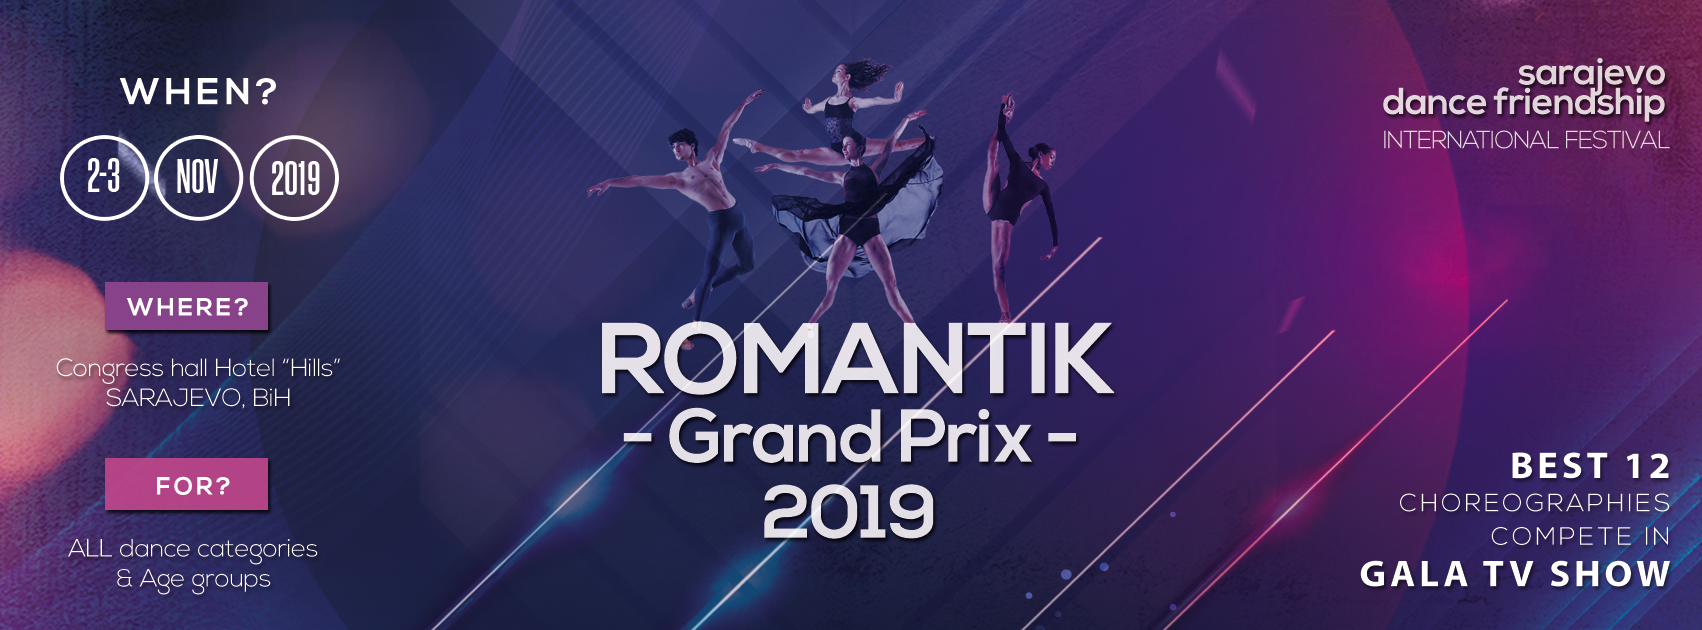 ROMANTIK GRAND PRIX 2019